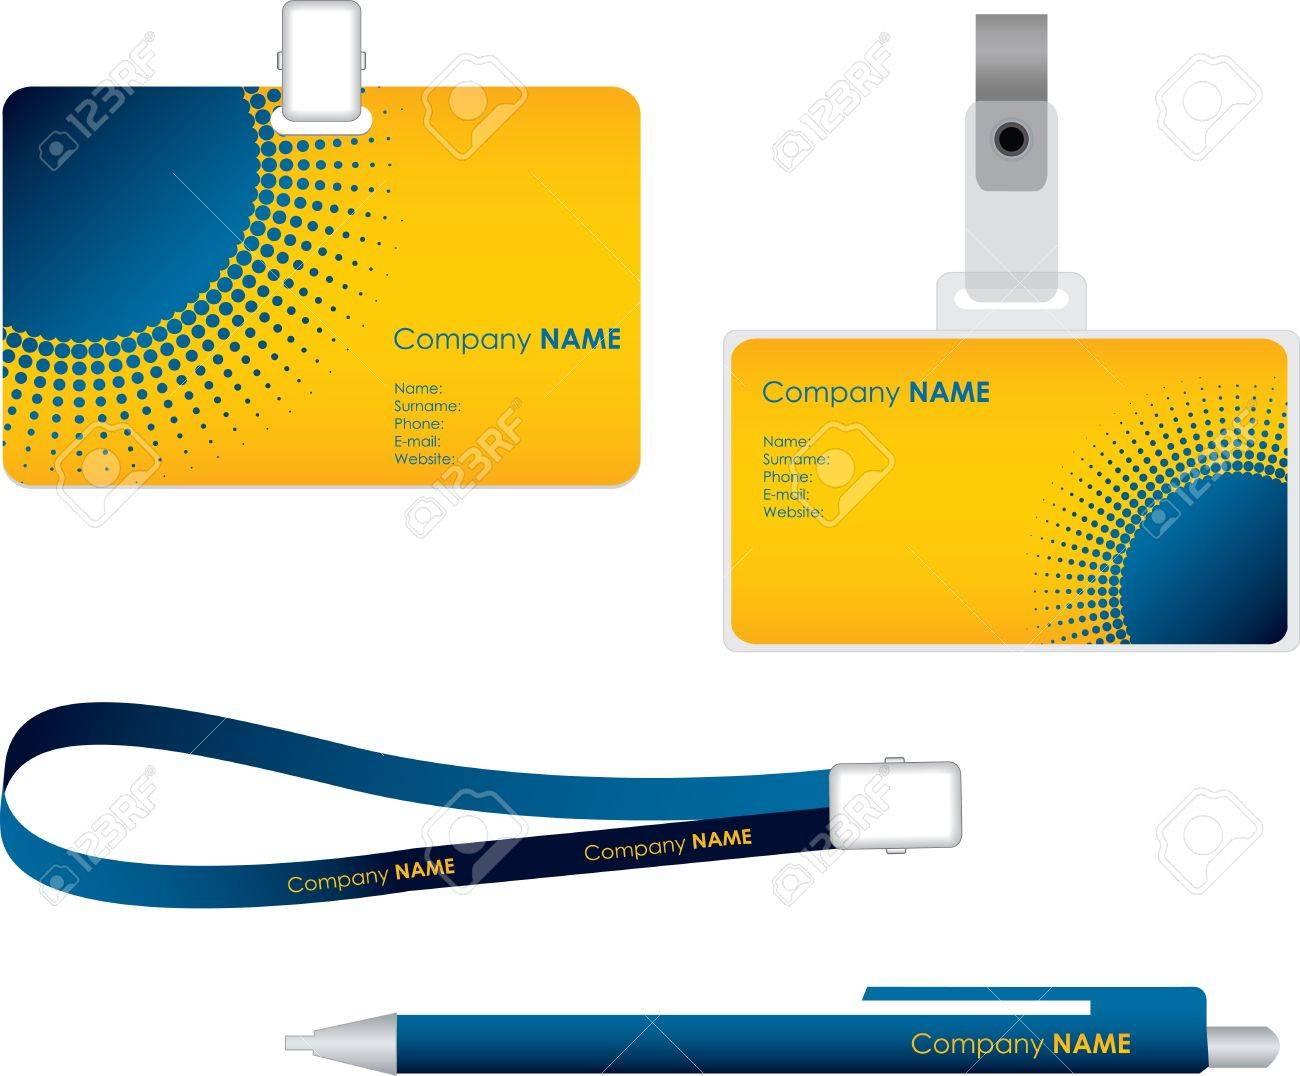 Name tag for id card - 9363397